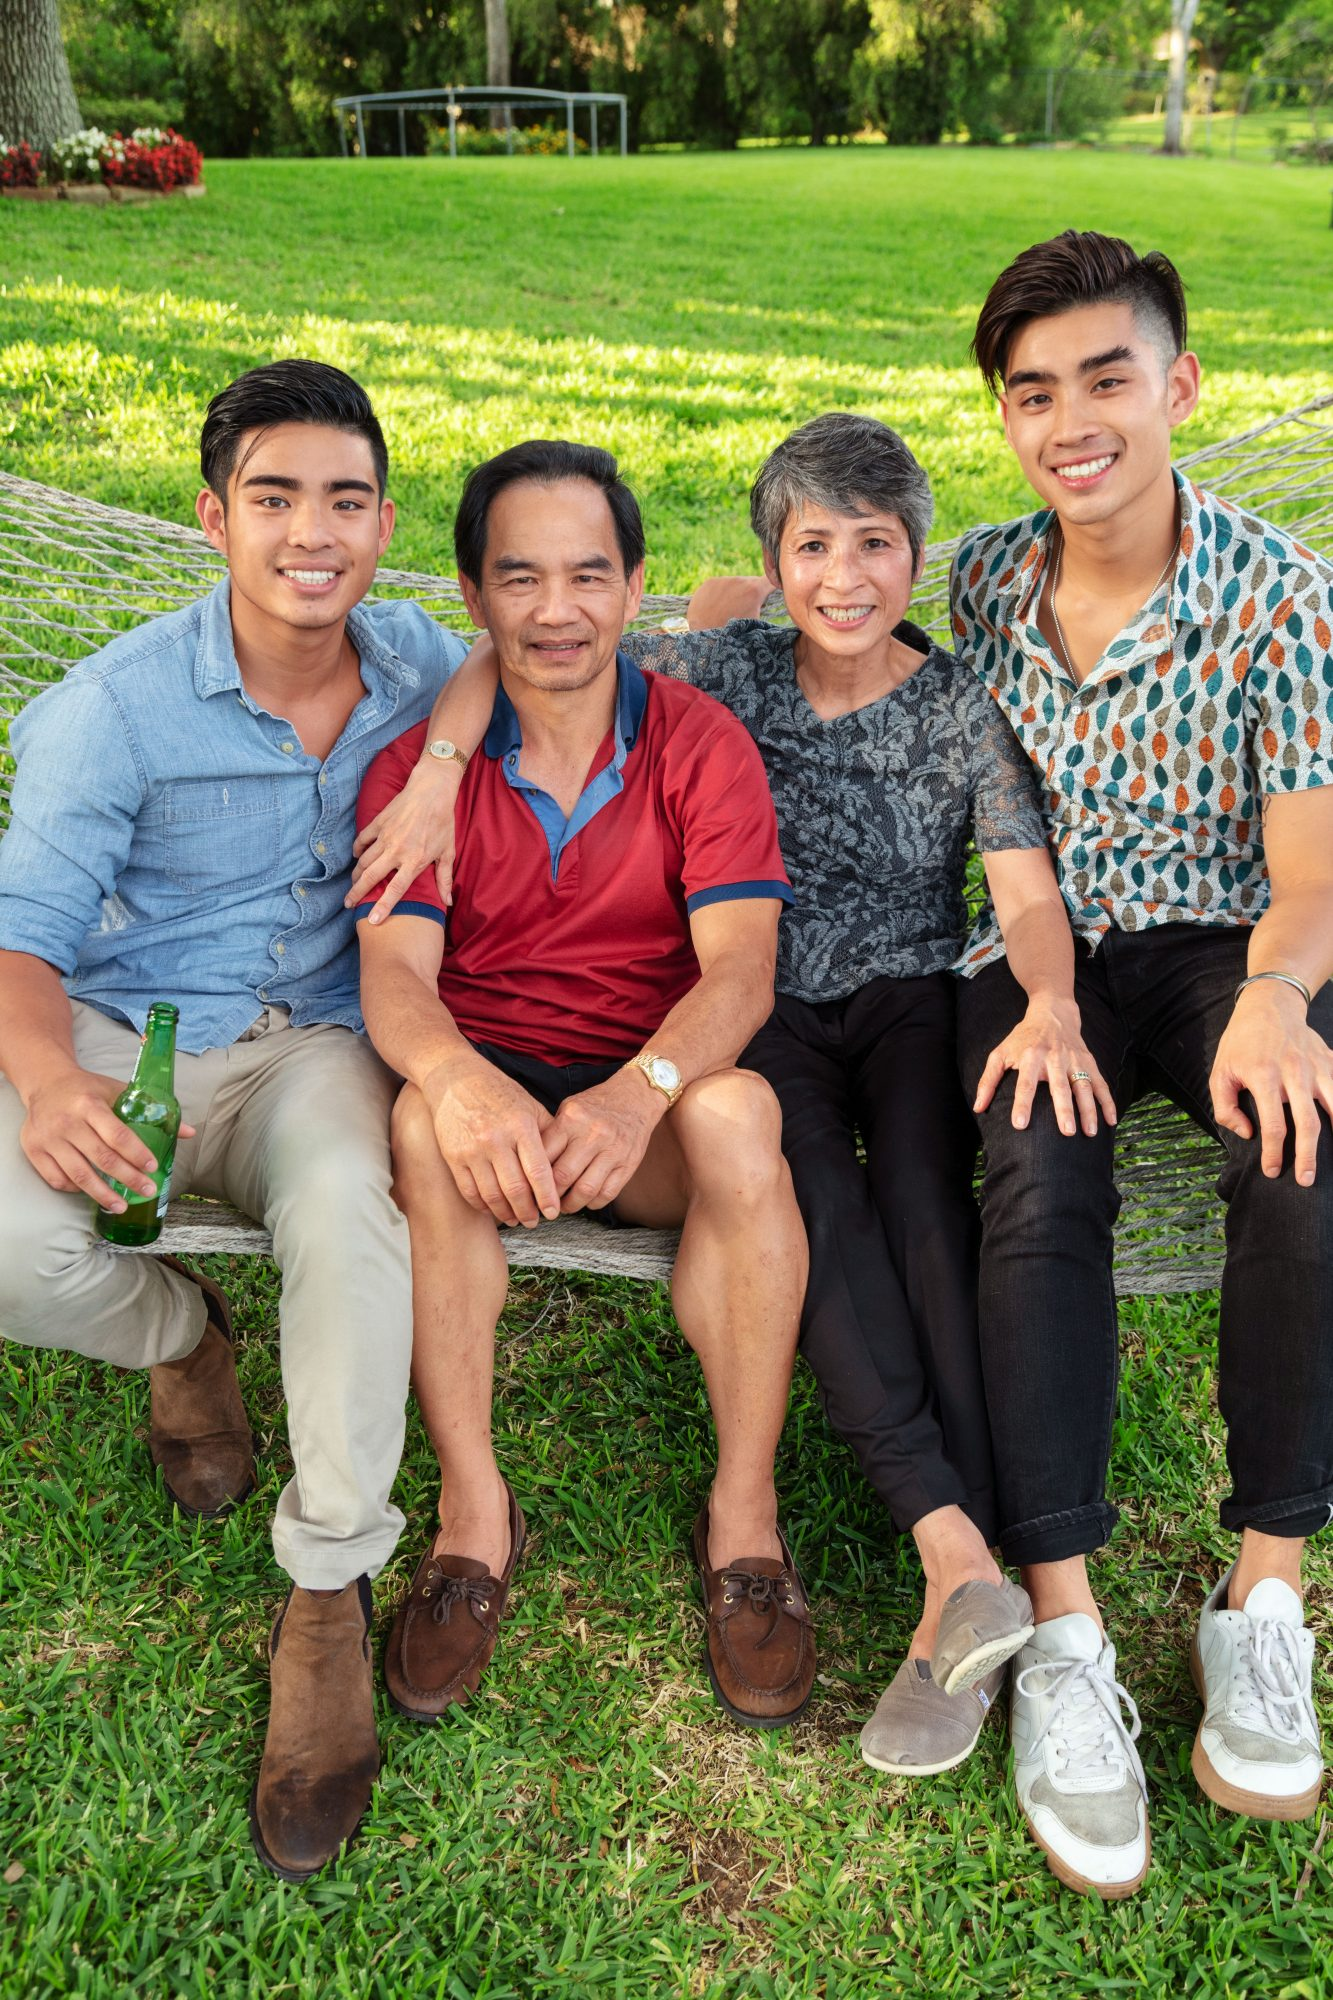 Dan Q. Dao with Brother, Father, and Mother at Family Crawfish Boil in Houston, TX